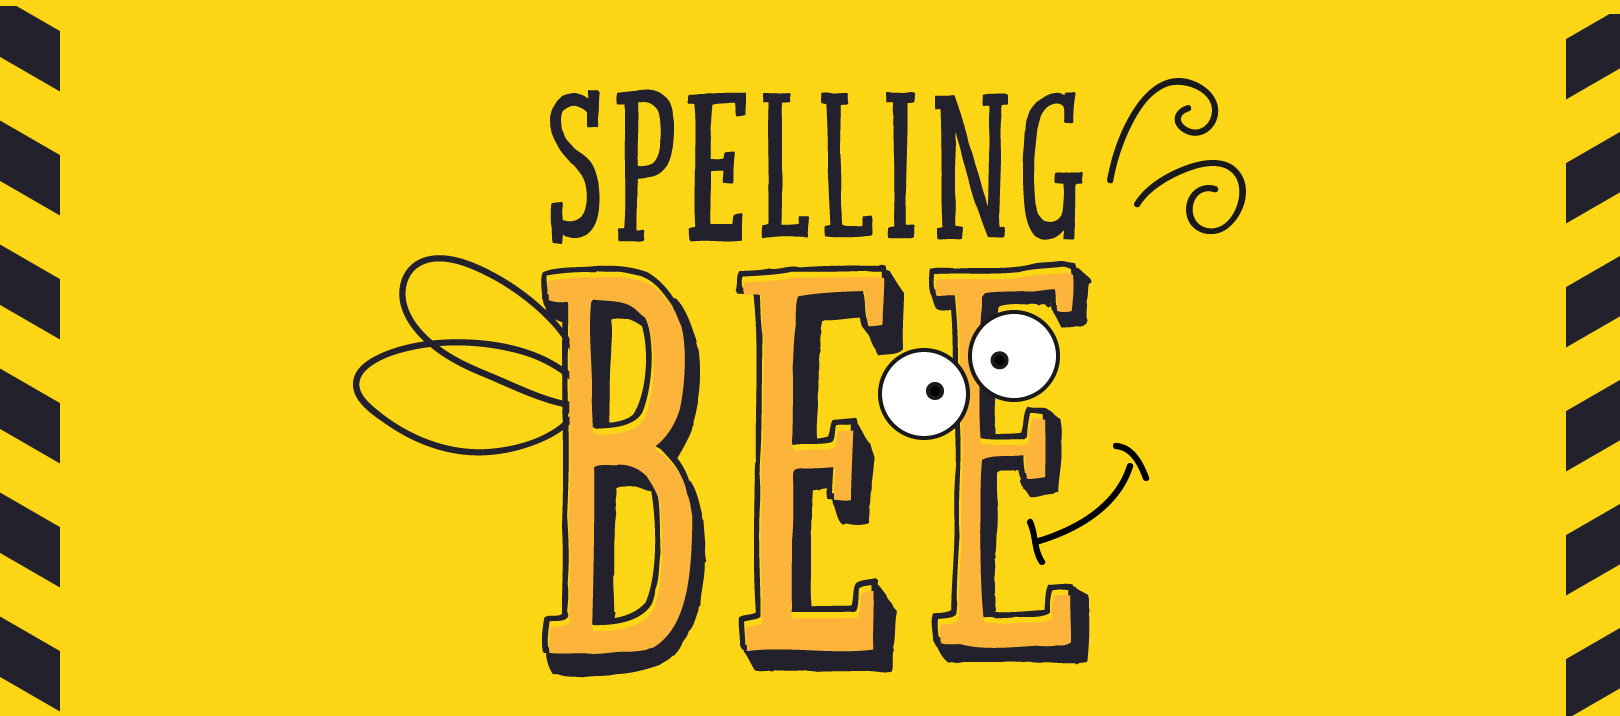 Spelling Bee List 2020.Spelling Bee